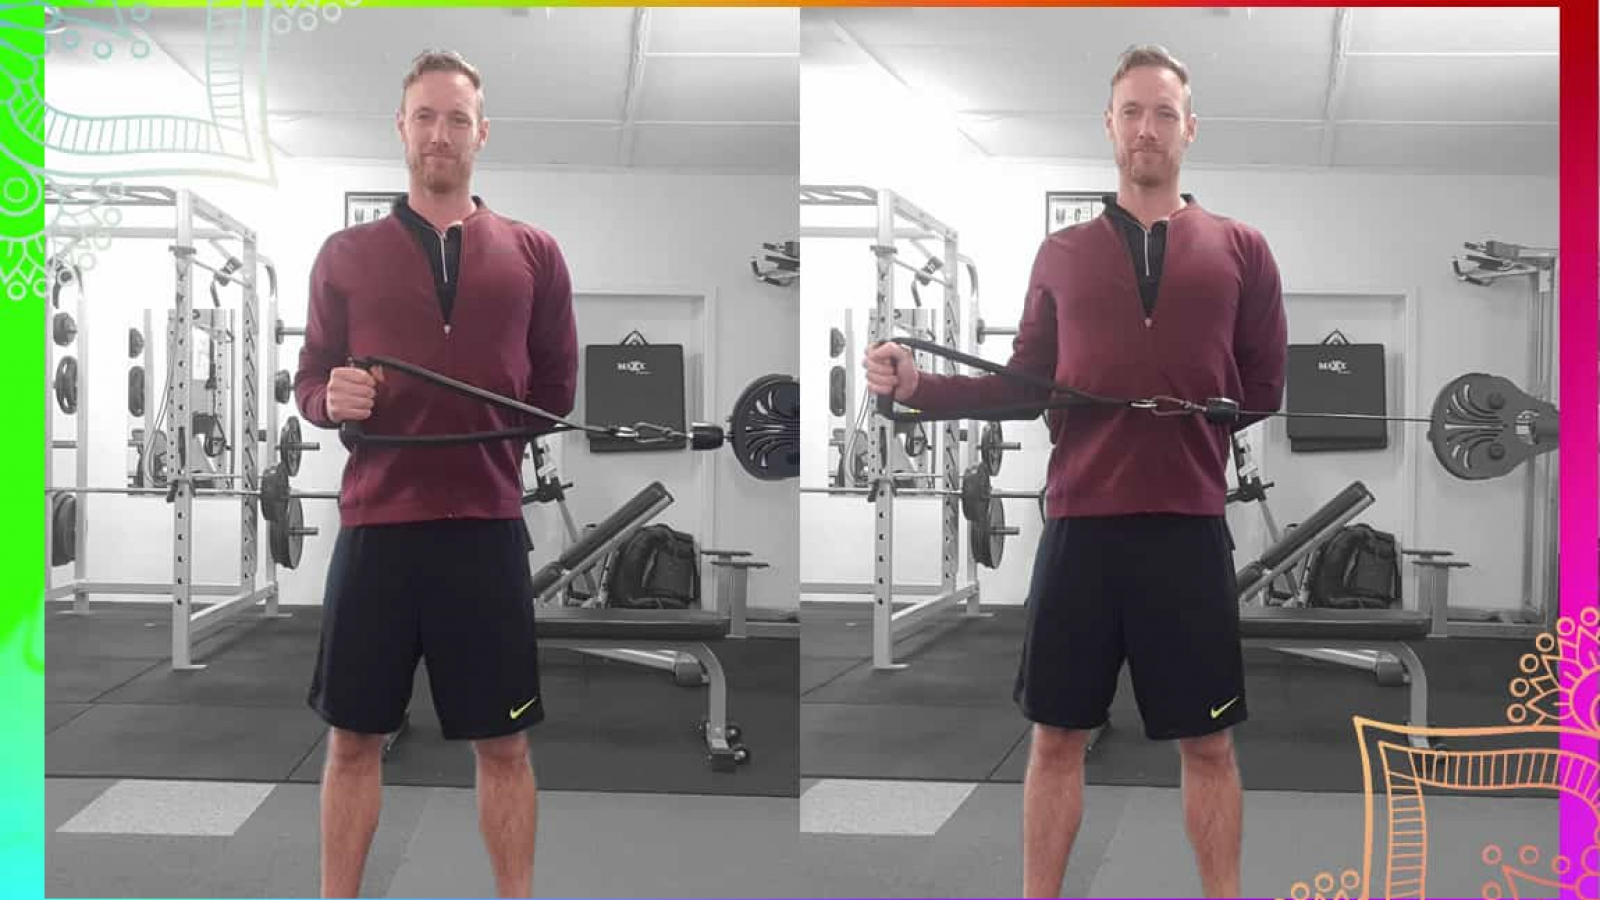 demonstration of the external rotation